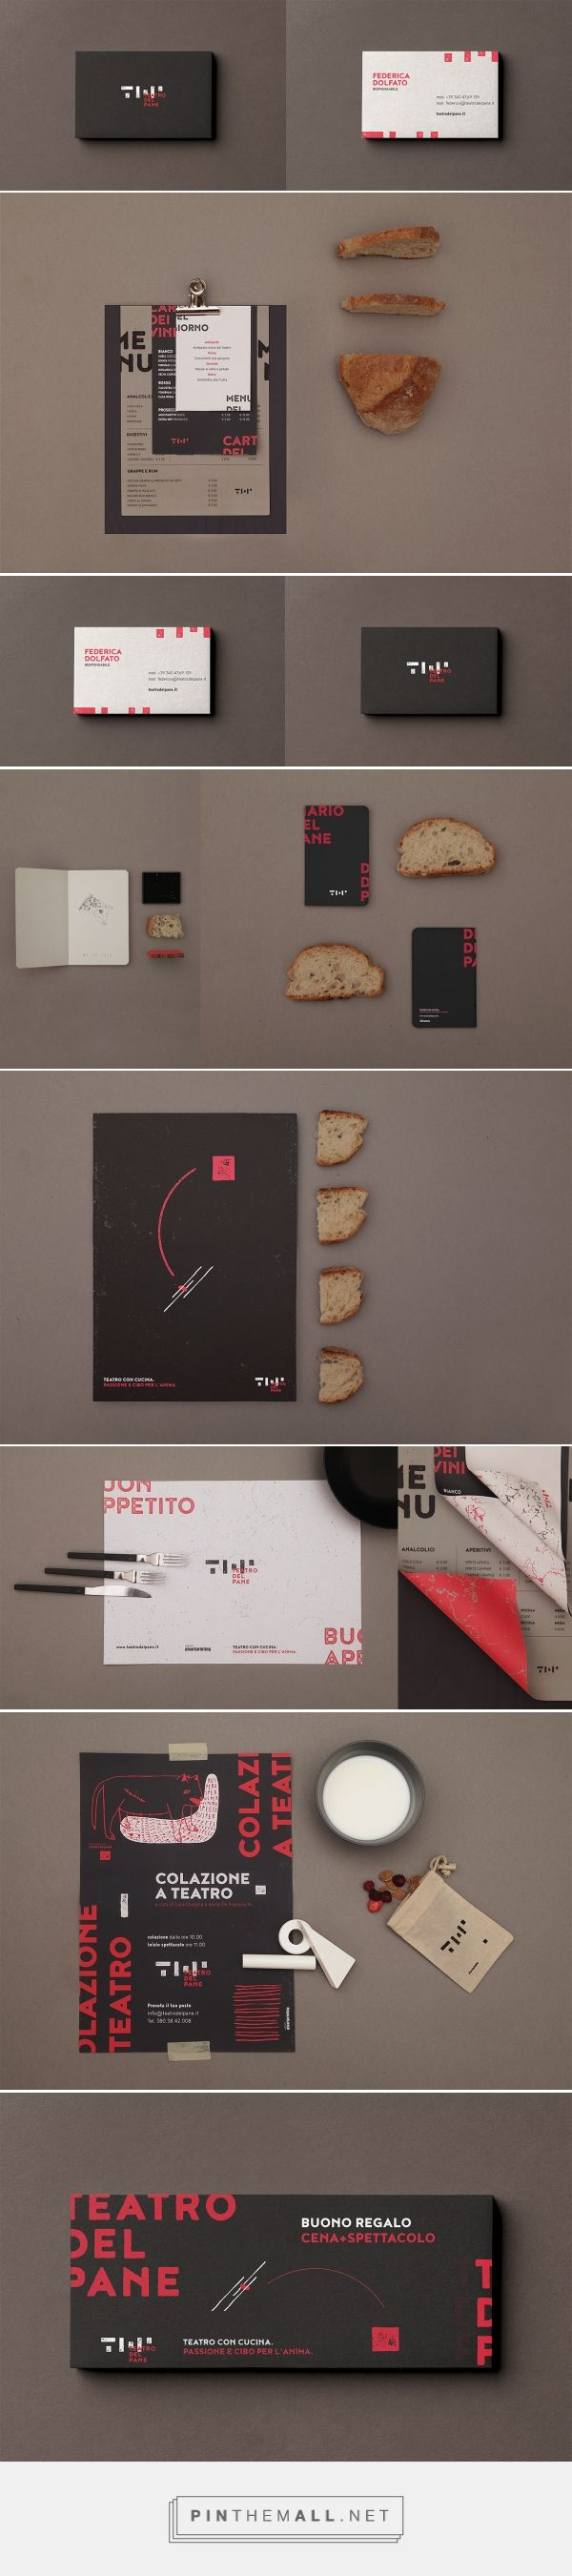 Teatro del Pane Performing Art Theater and Restaurant Branding by Francesco Croce | Fivestar Branding Agency – Design and Branding Agency & Curated Inspiration Gallery